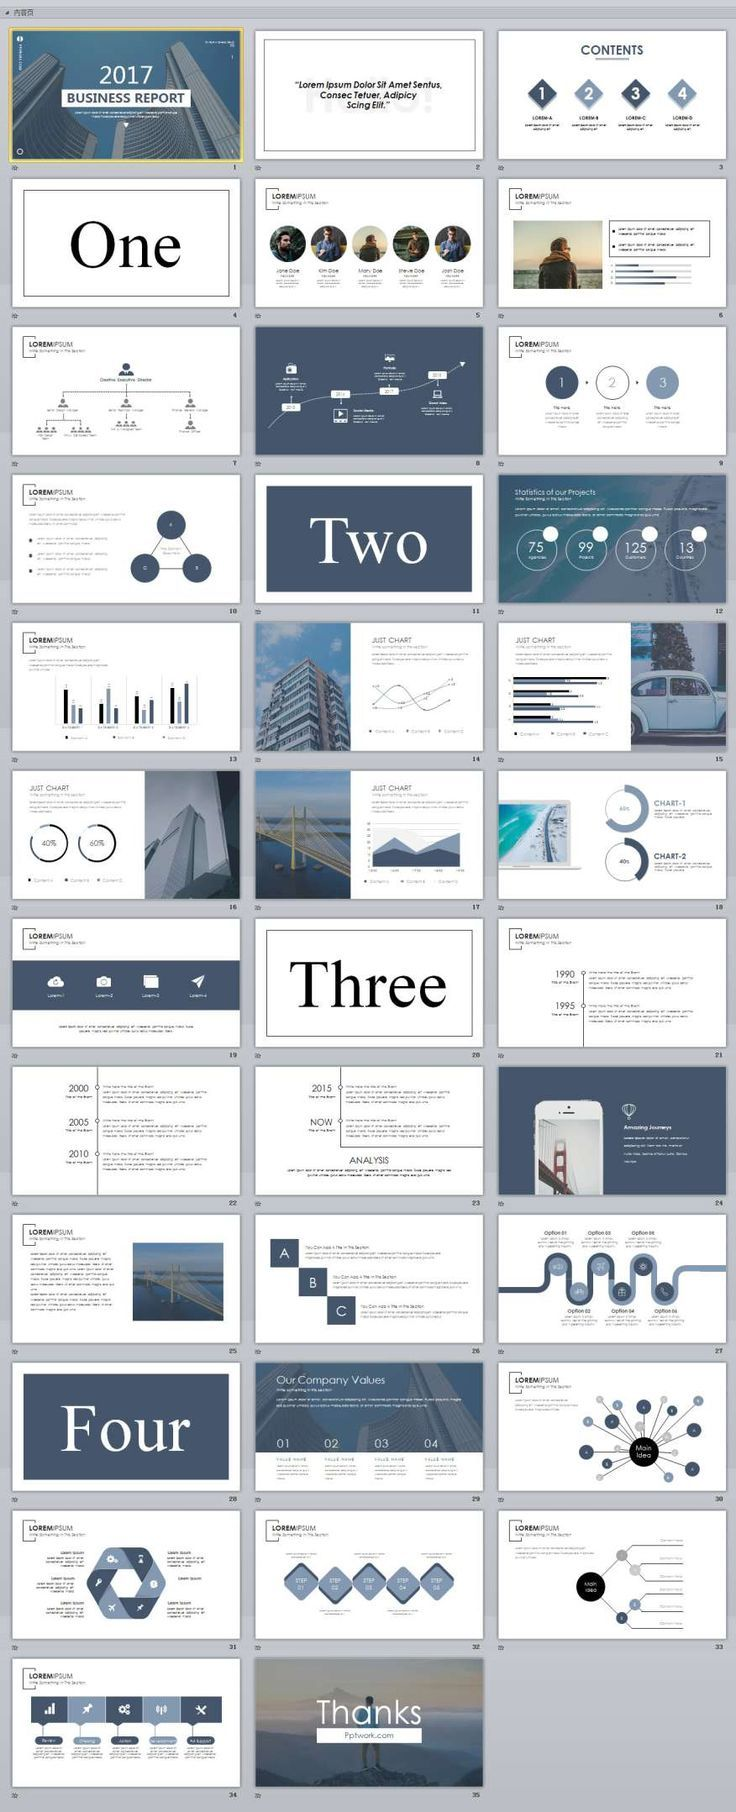 35 slide white magazine style powerpoint templates apresentao 35 slide white magazine style powerpoint templates the highest quality powerpoint templates and keynote templates download toneelgroepblik Gallery